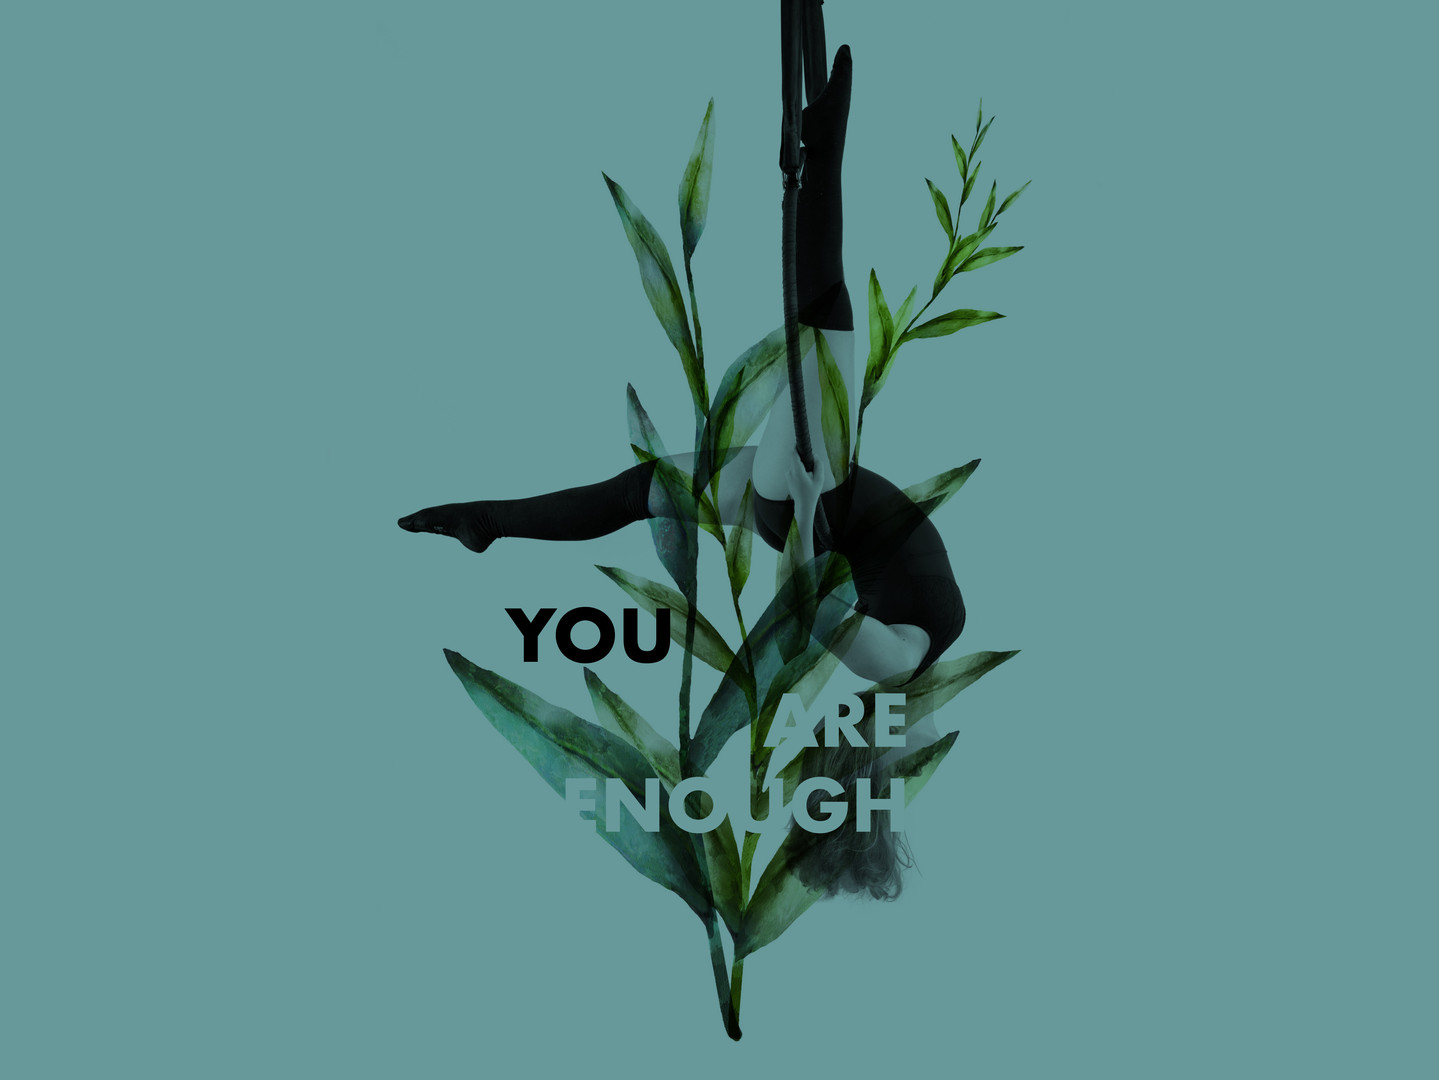 pub Face US you are enough3.jpg